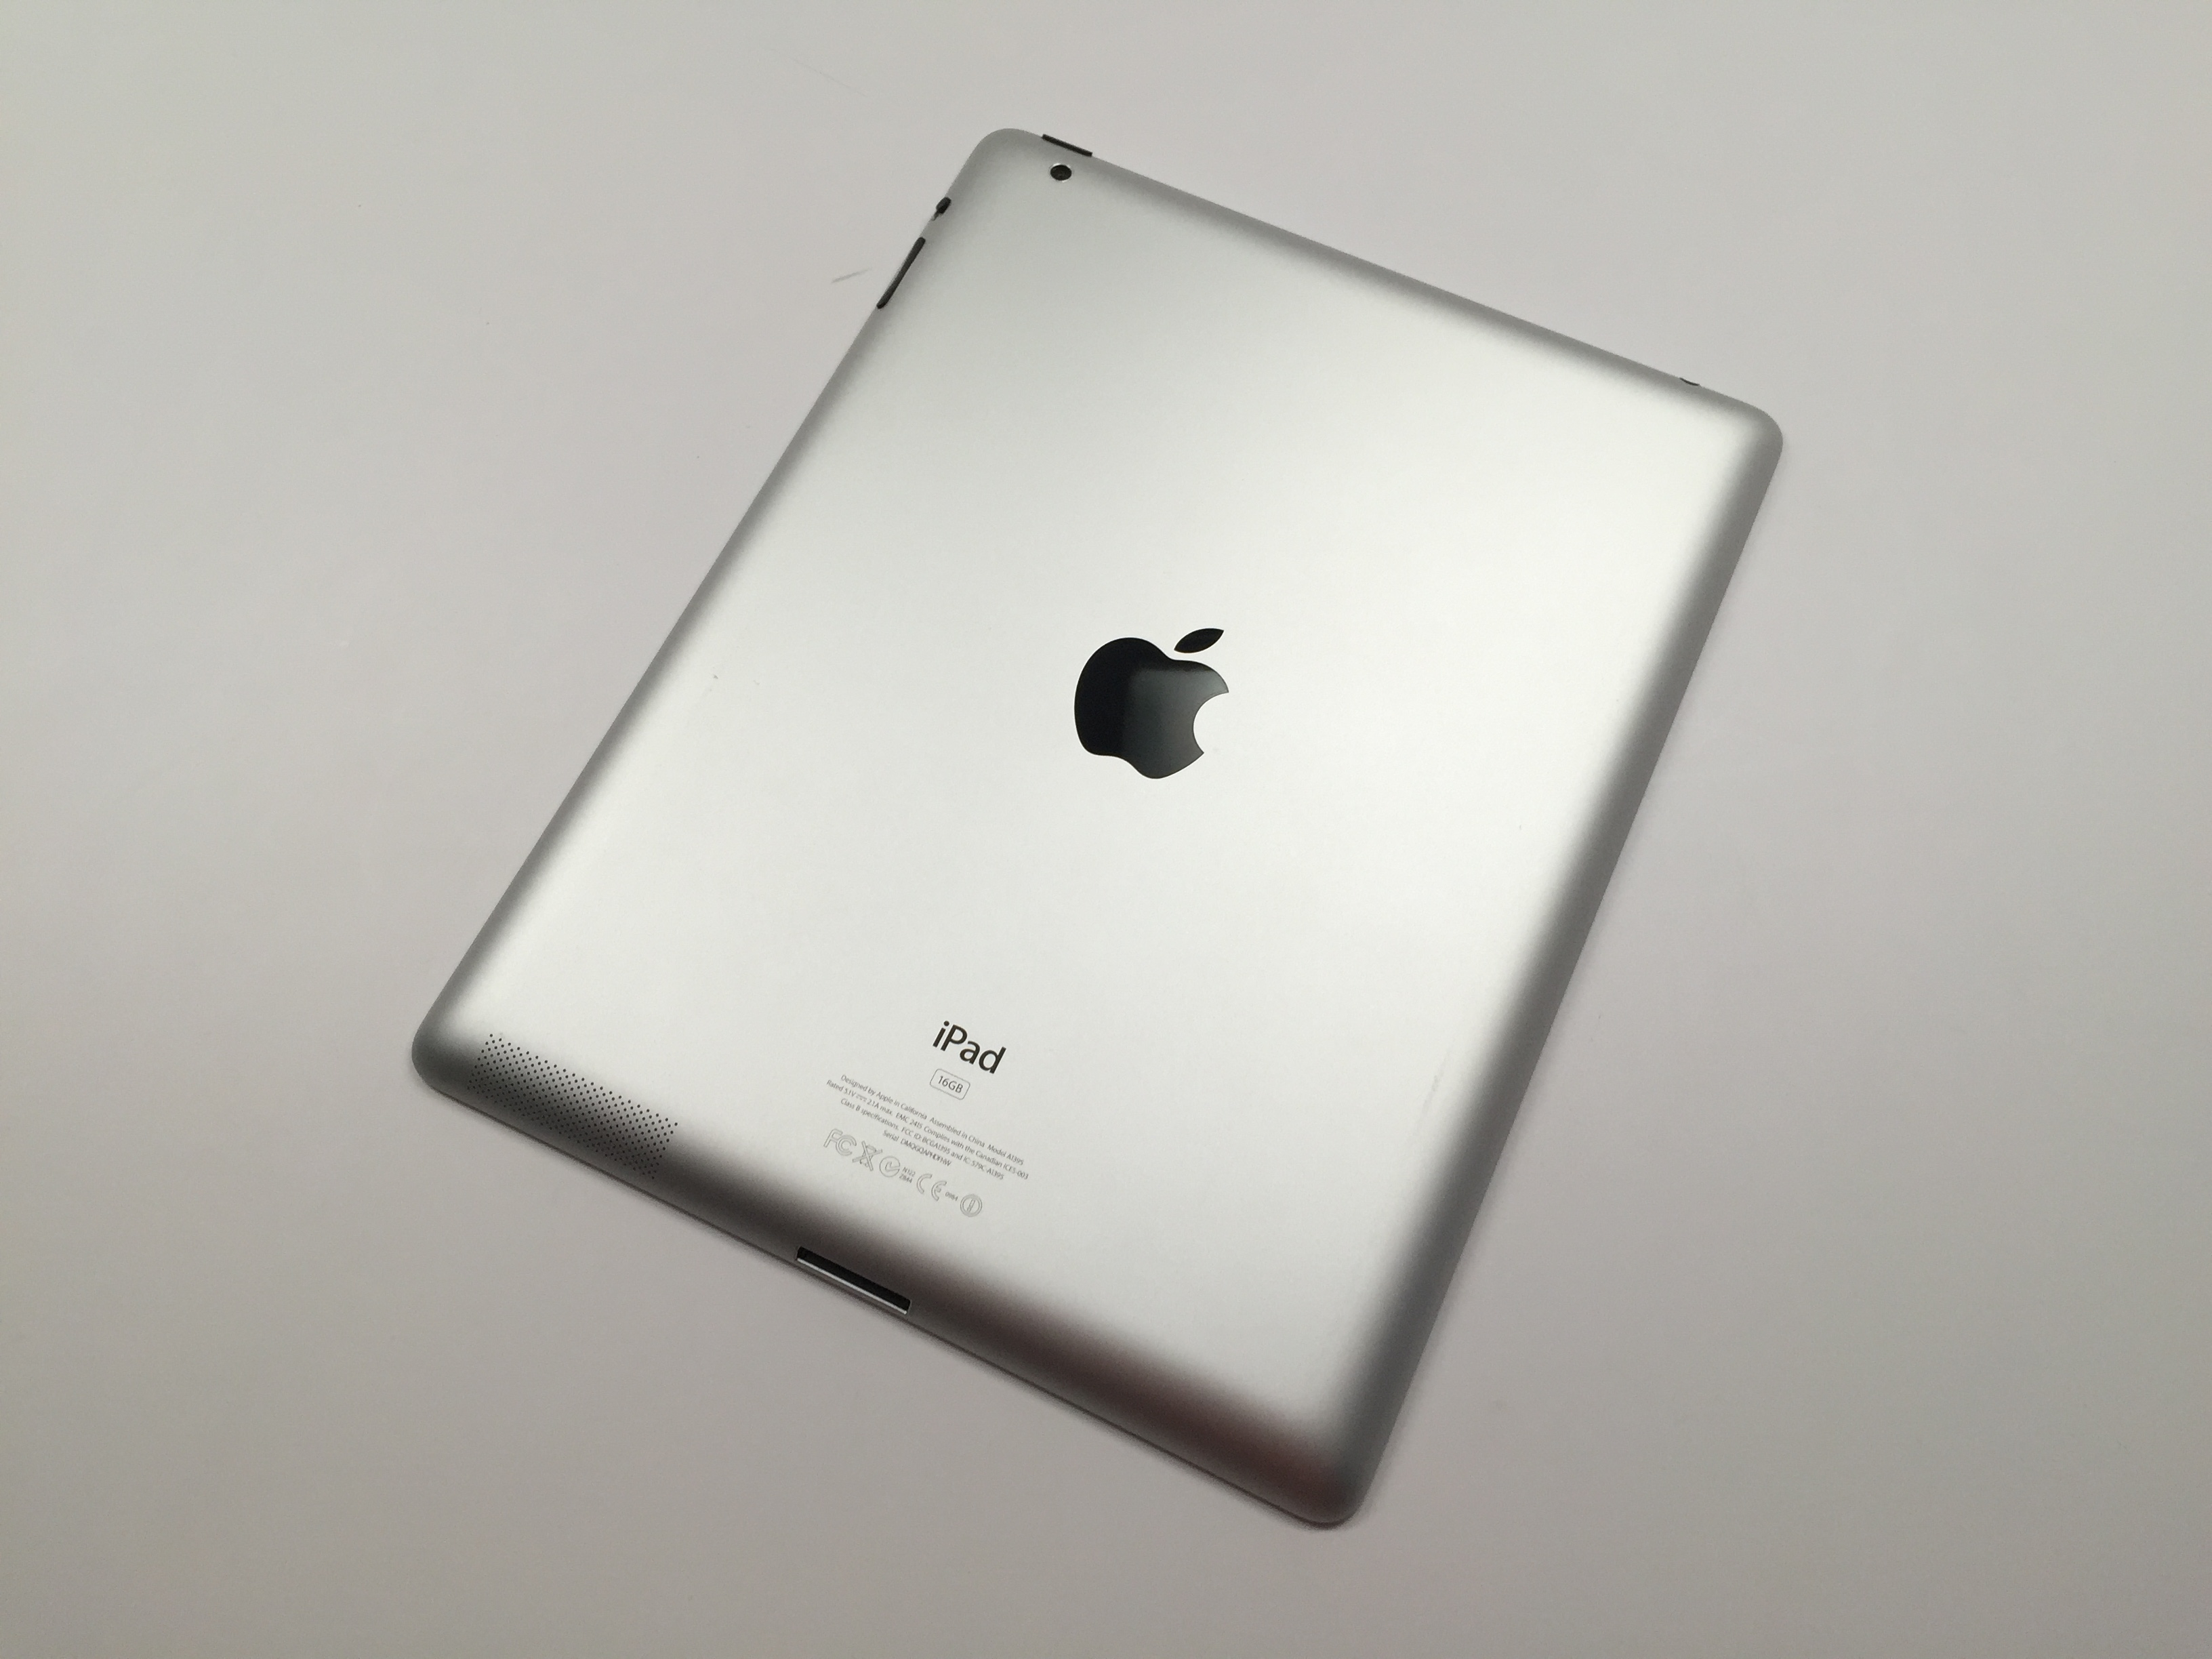 Got an iPhone 4s or iPad 2? Why you should never upgrade